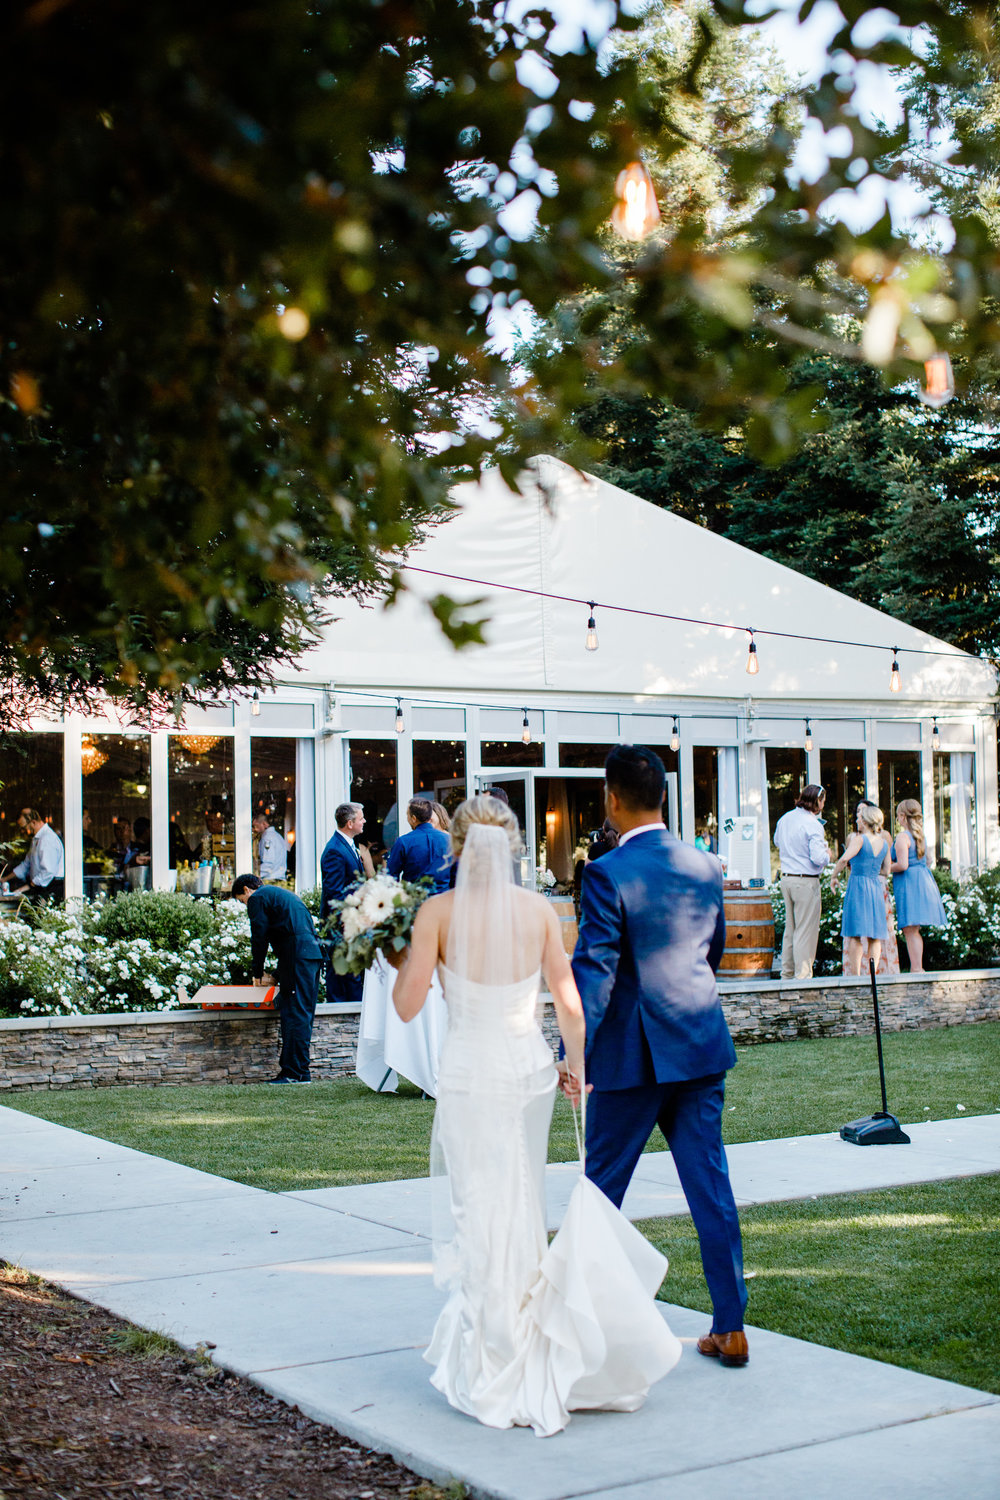 Neil+Christine_FairviewWedding_7.28.18-592.jpg